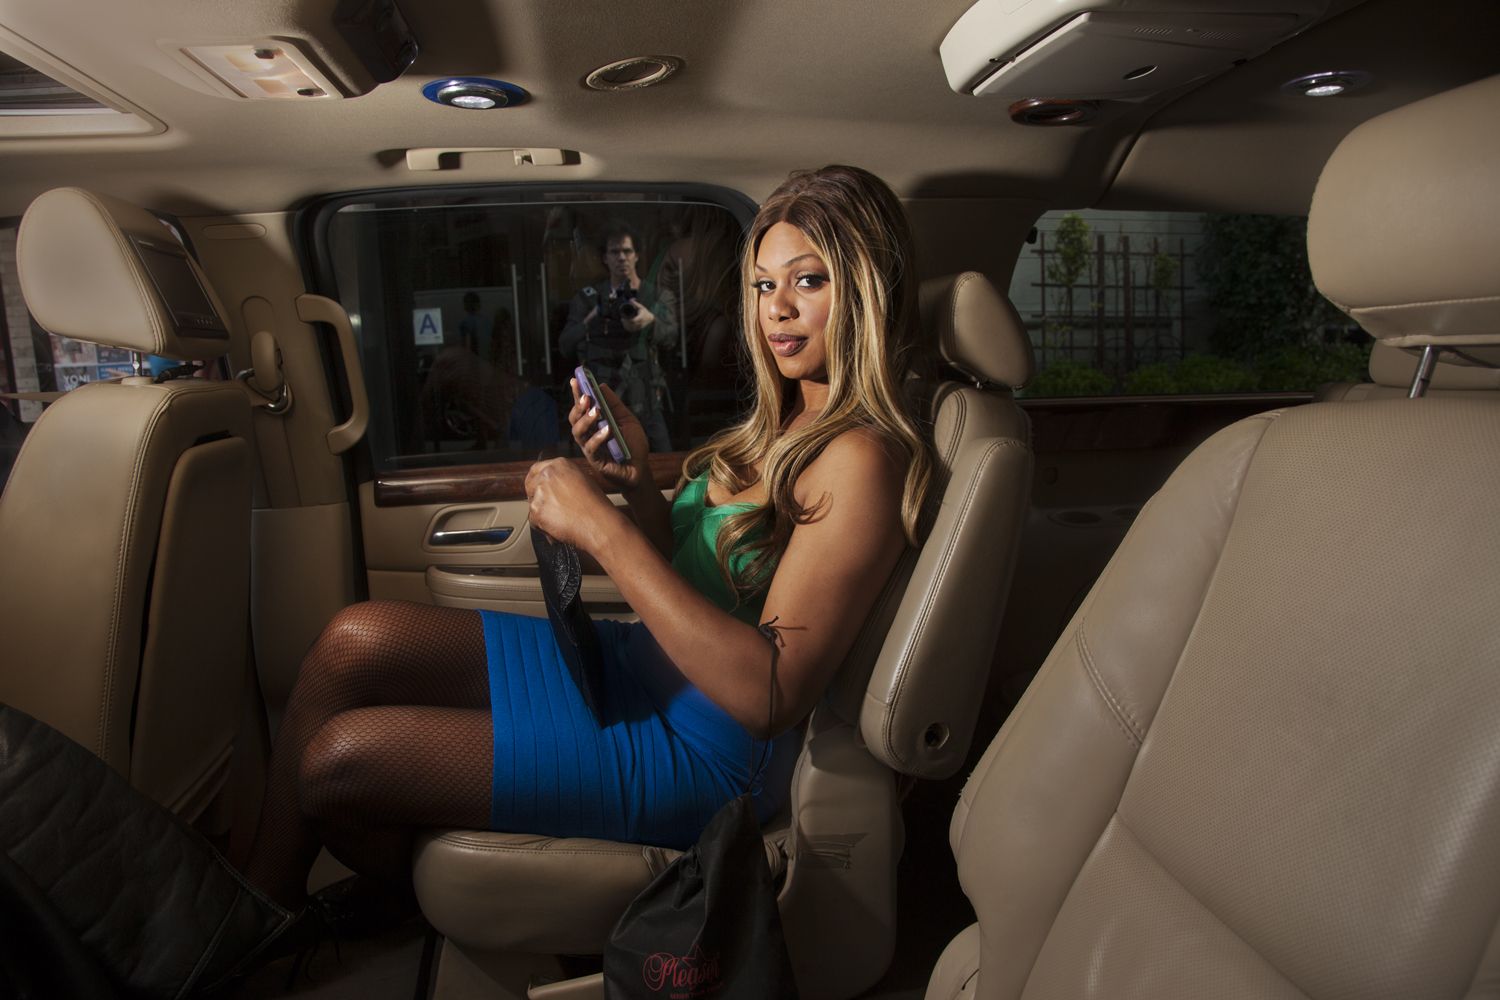 <strong>Laverne Cox</strong> Laverne Cox poses for a portrait while on her way to an event in New York City.